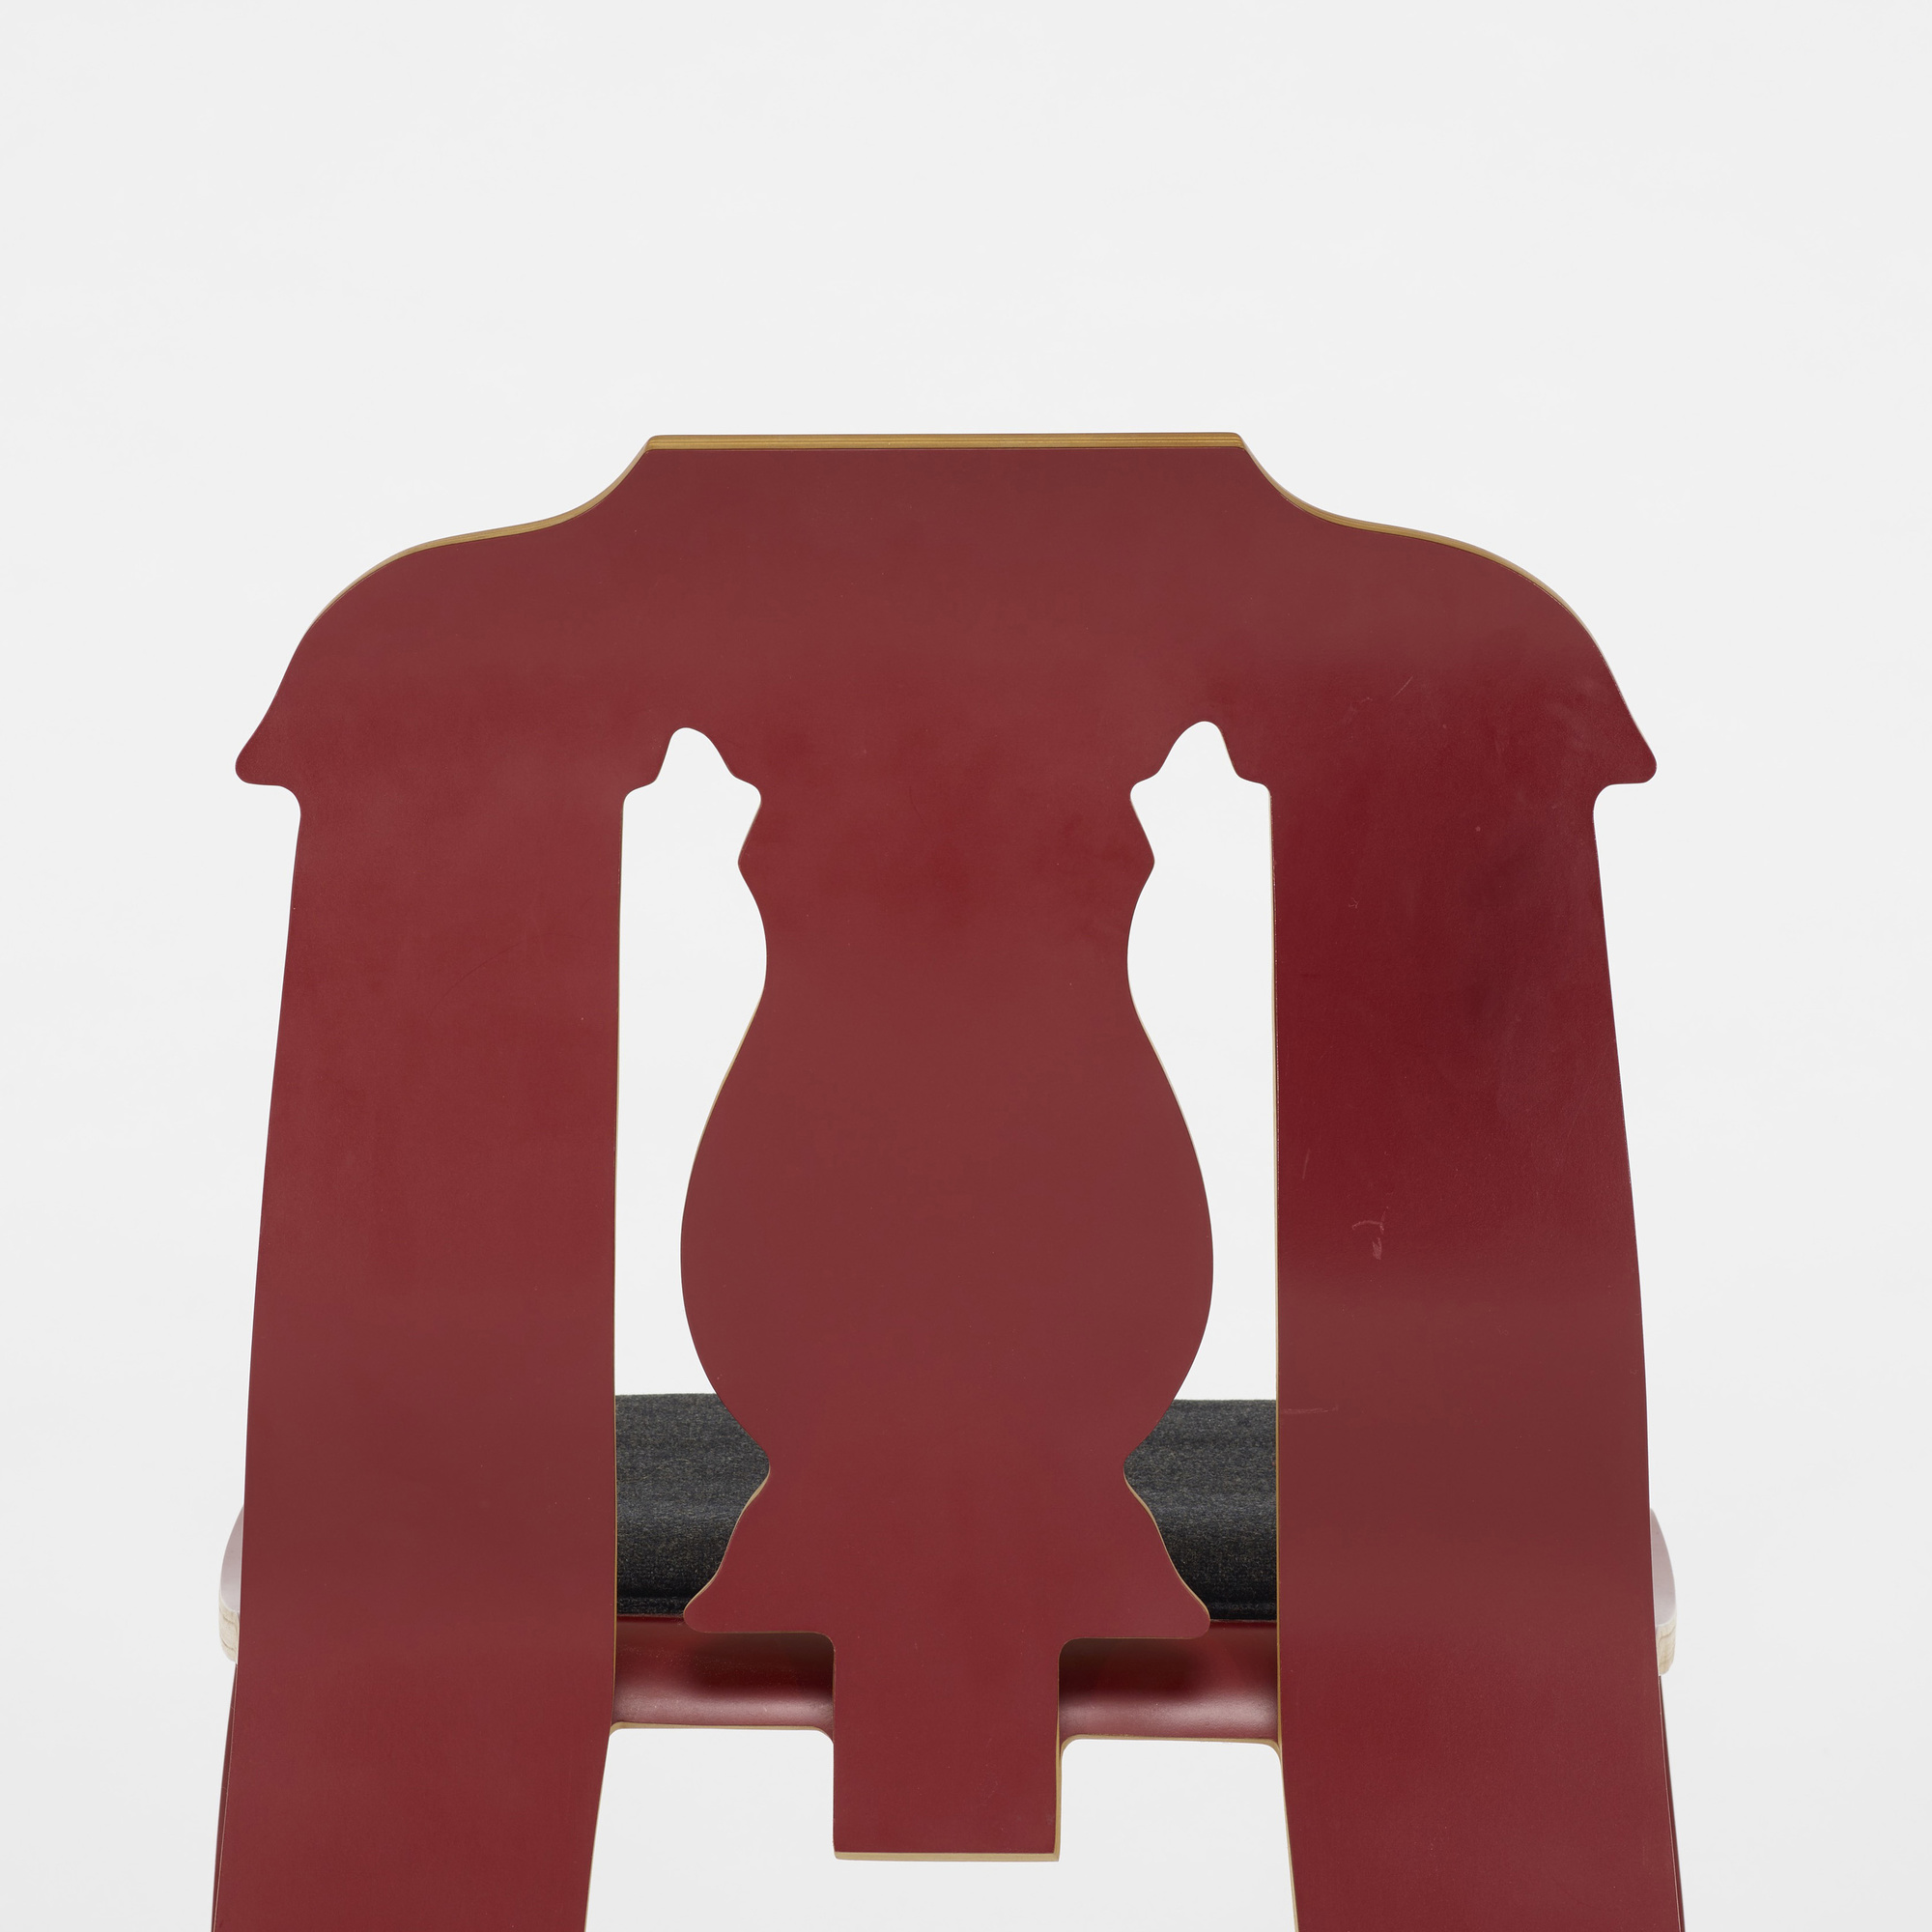 428: Robert Venturi / Empire chair (4 of 4)